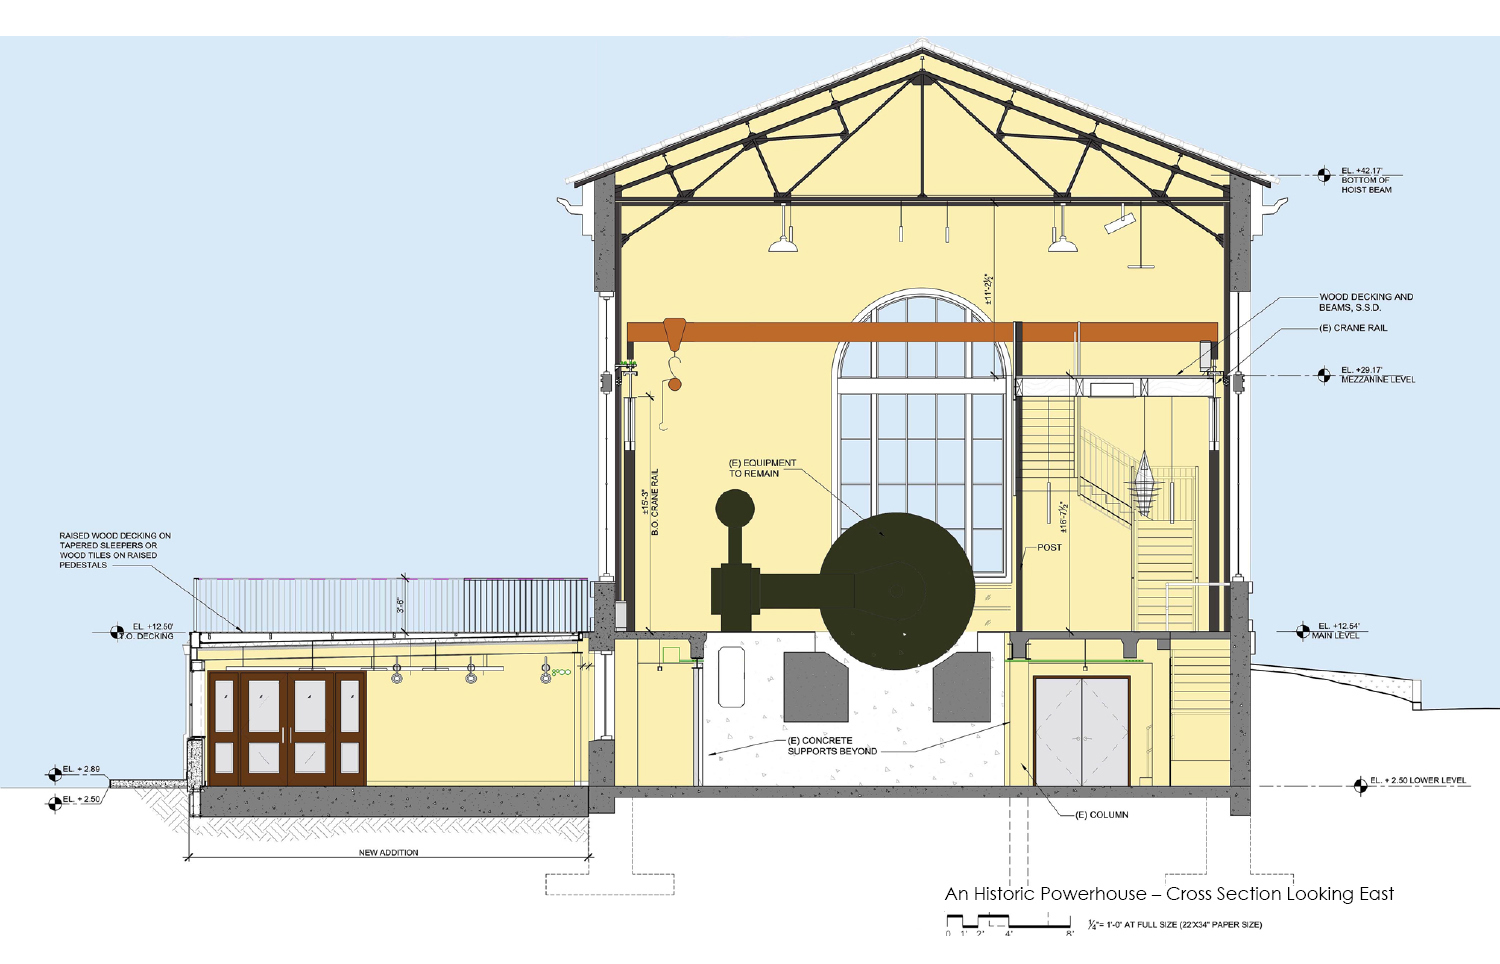 Cross-section drawing looking east. To make room for re-use of the building, the interior is cleared out except for one salvaged and refurbished historic compressor. A new 2,600 SF addition to the lower le Marcy Wong Donn Logan Architects}